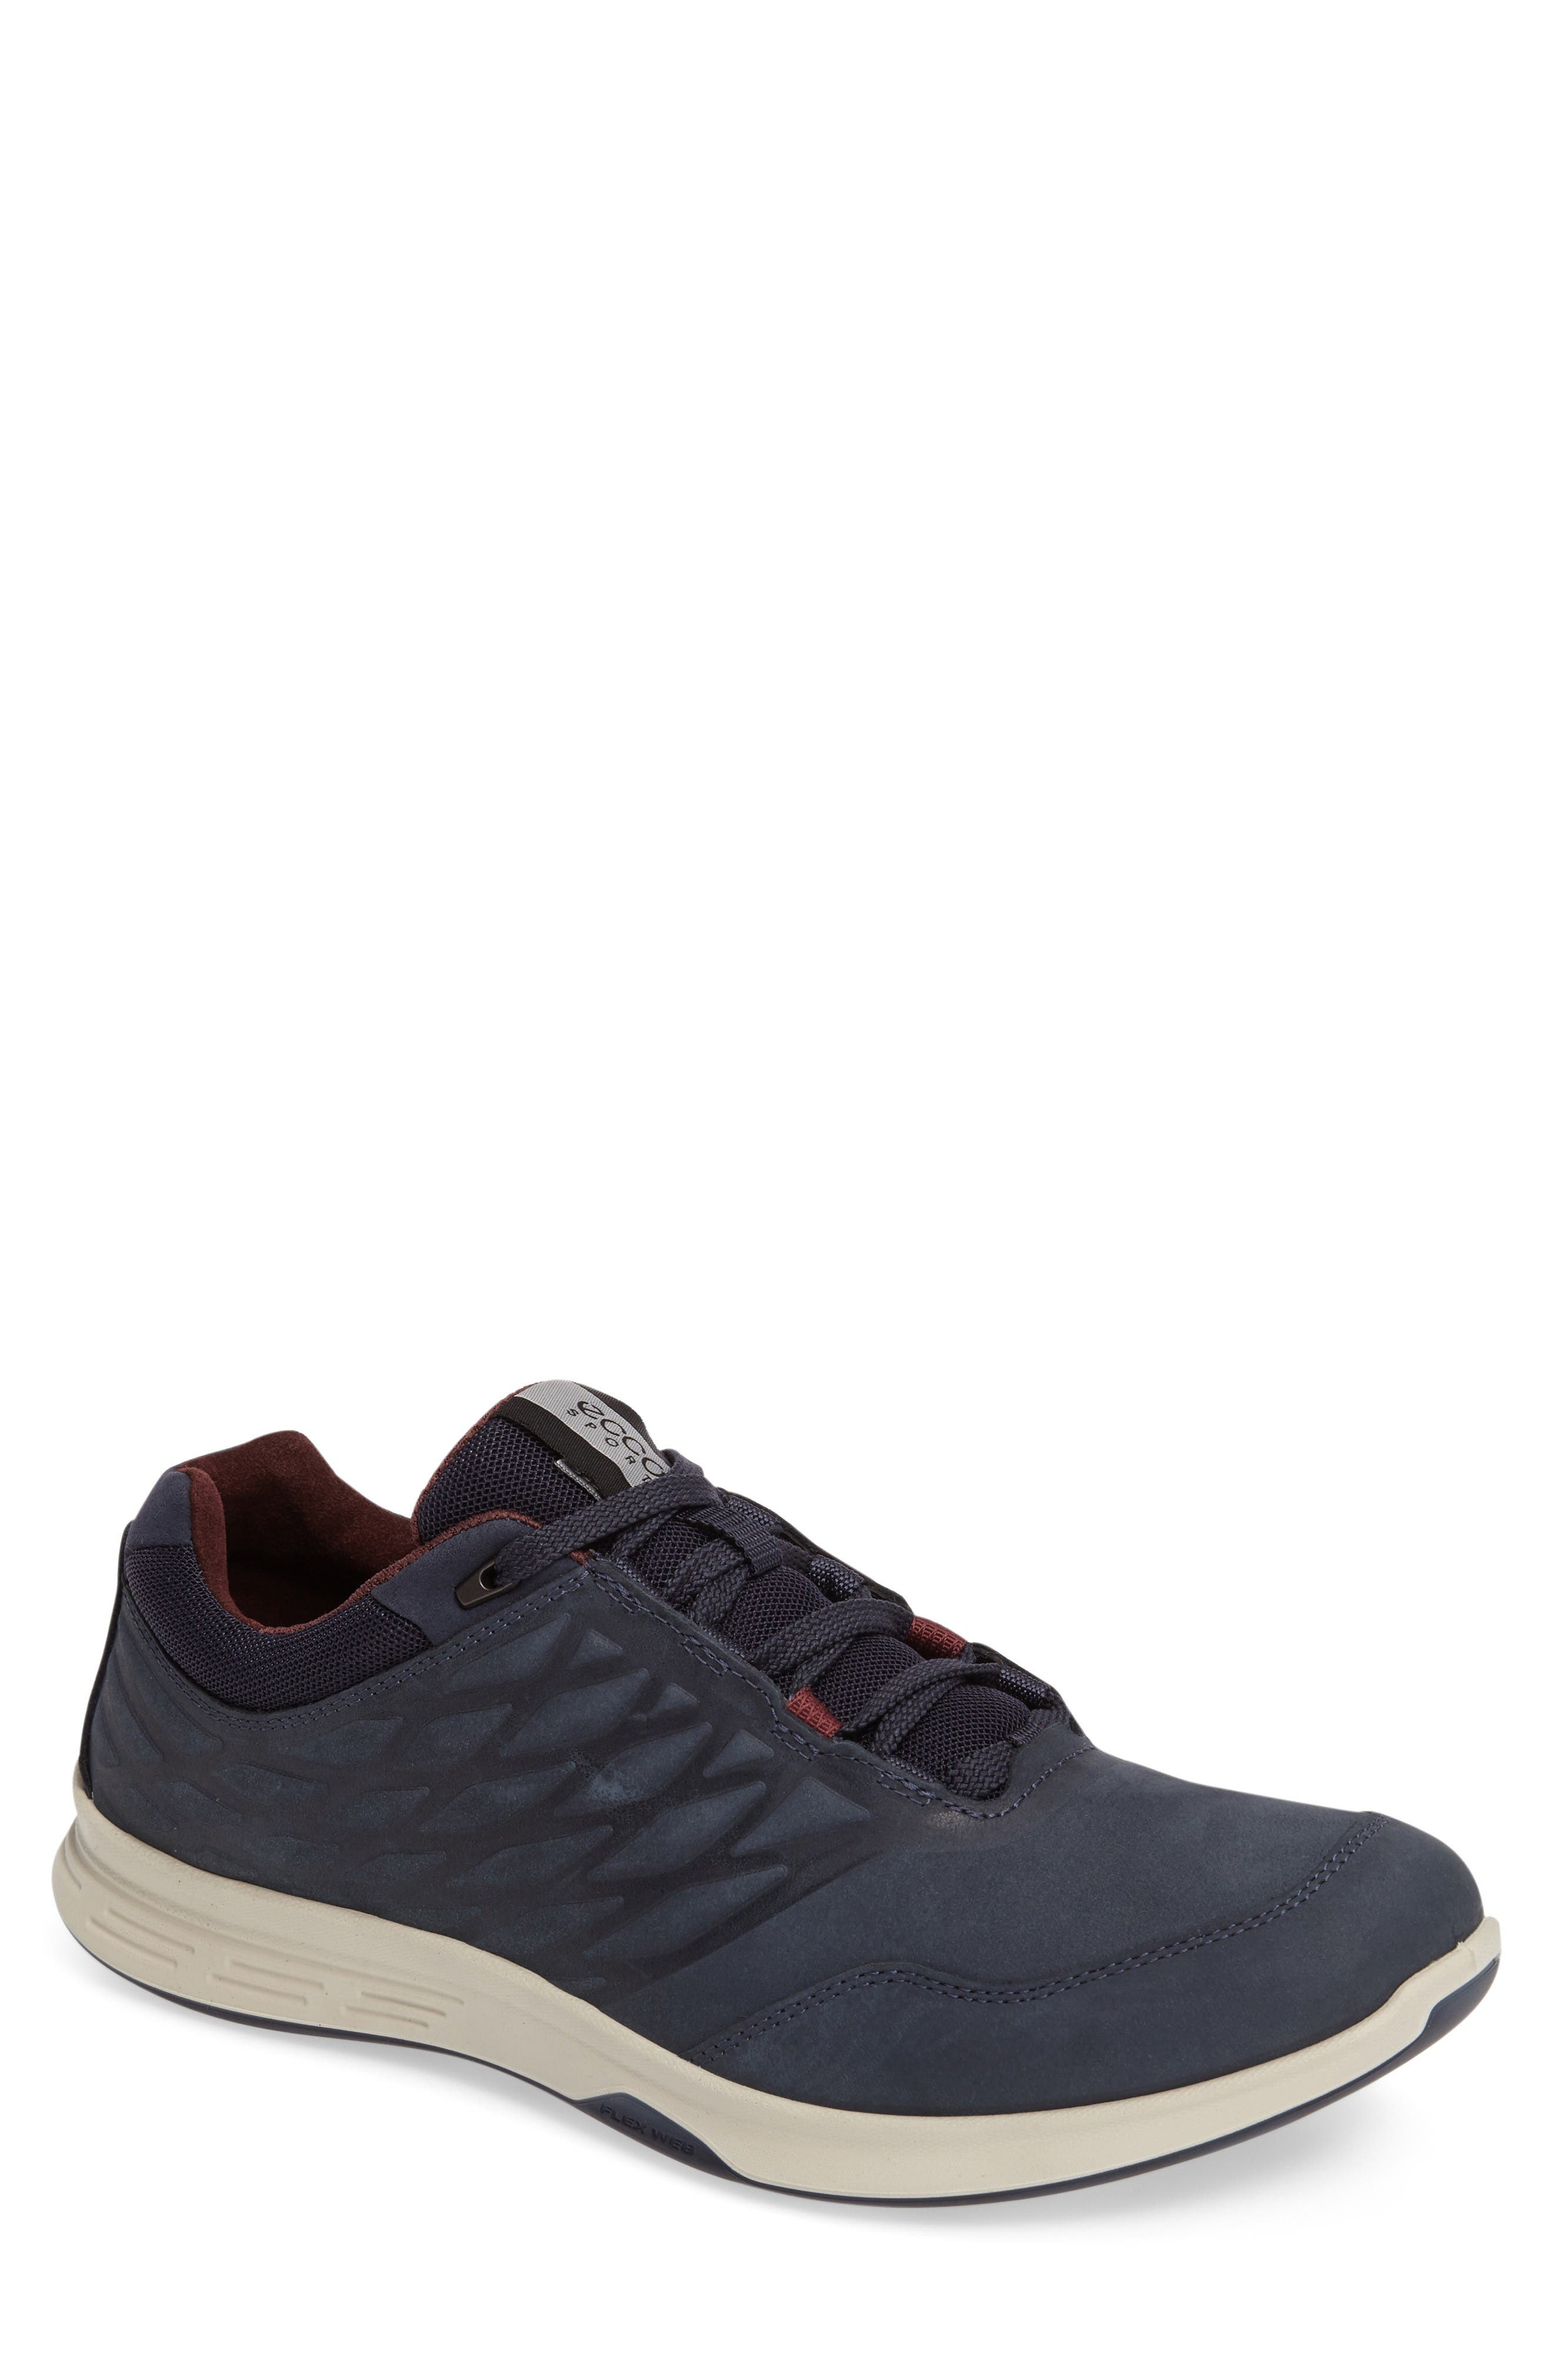 'Exceed' Leather Sneaker,                         Main,                         color, Marine